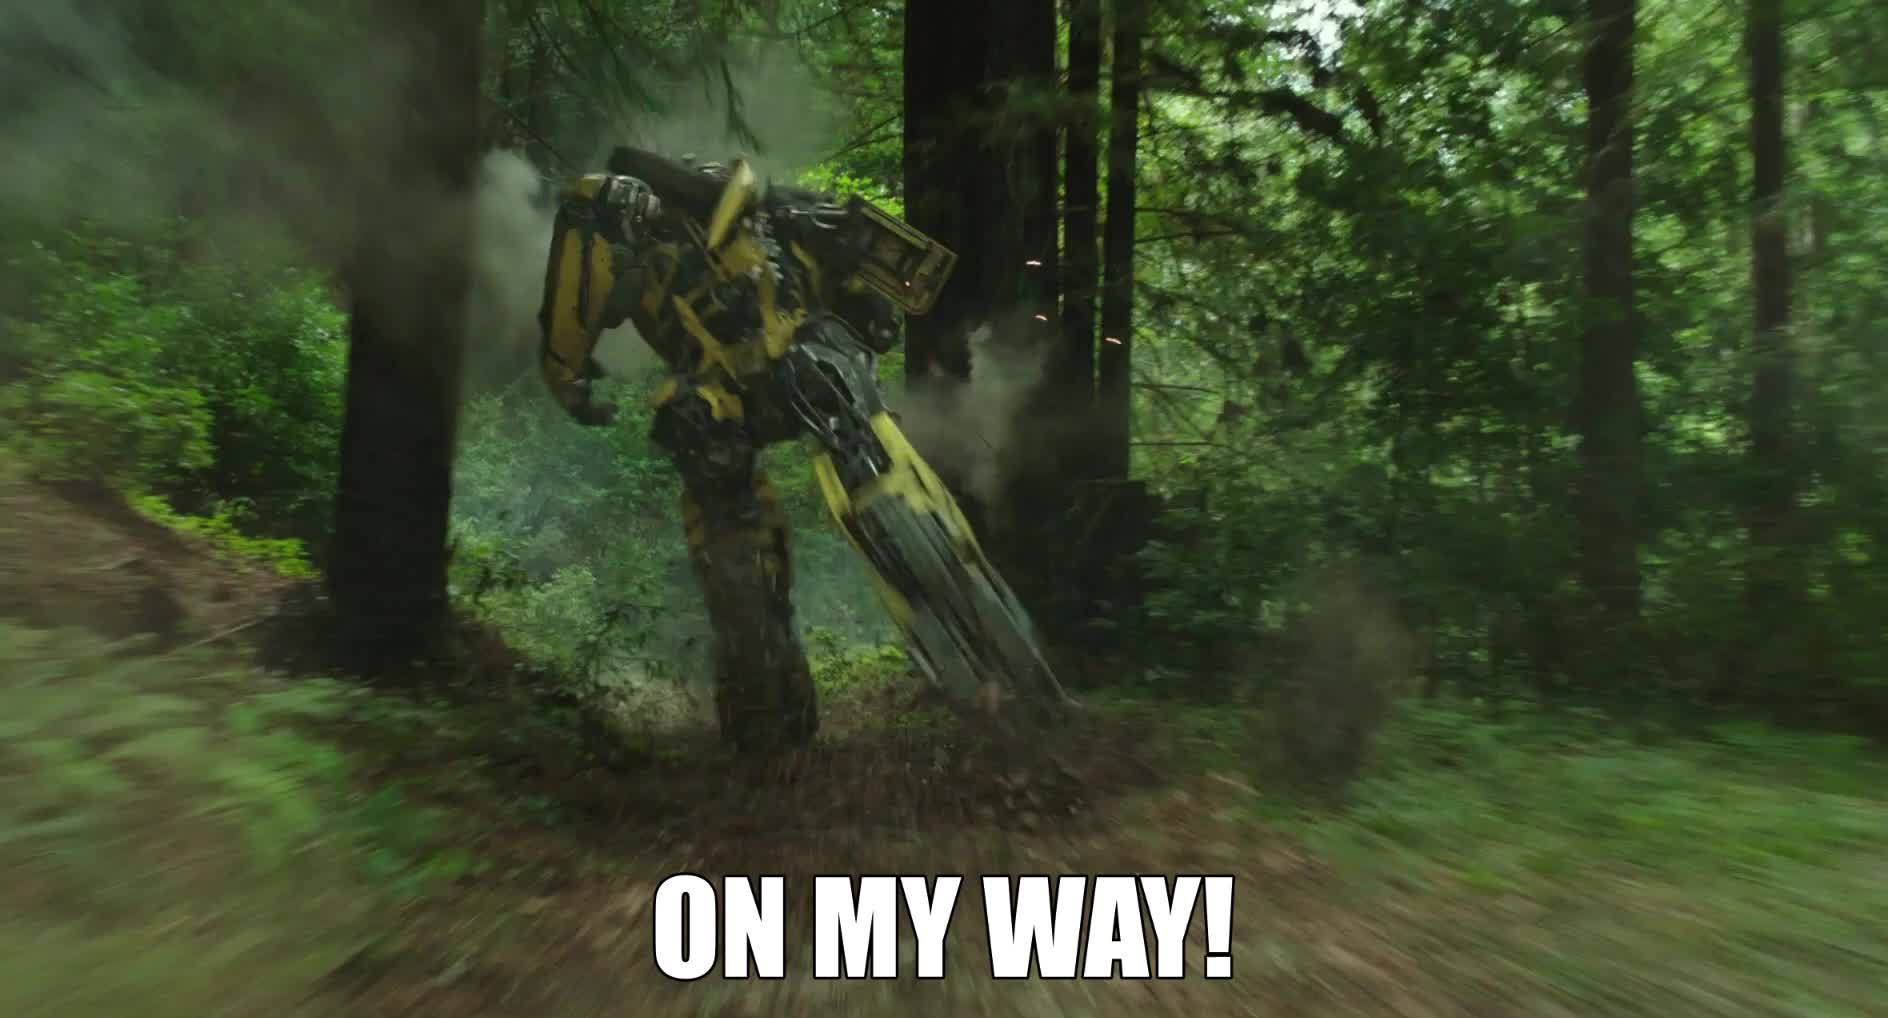 bumblebee, bumblebee movie, bumblebeemovie, omw, on my way, transformers, On My Way! GIFs